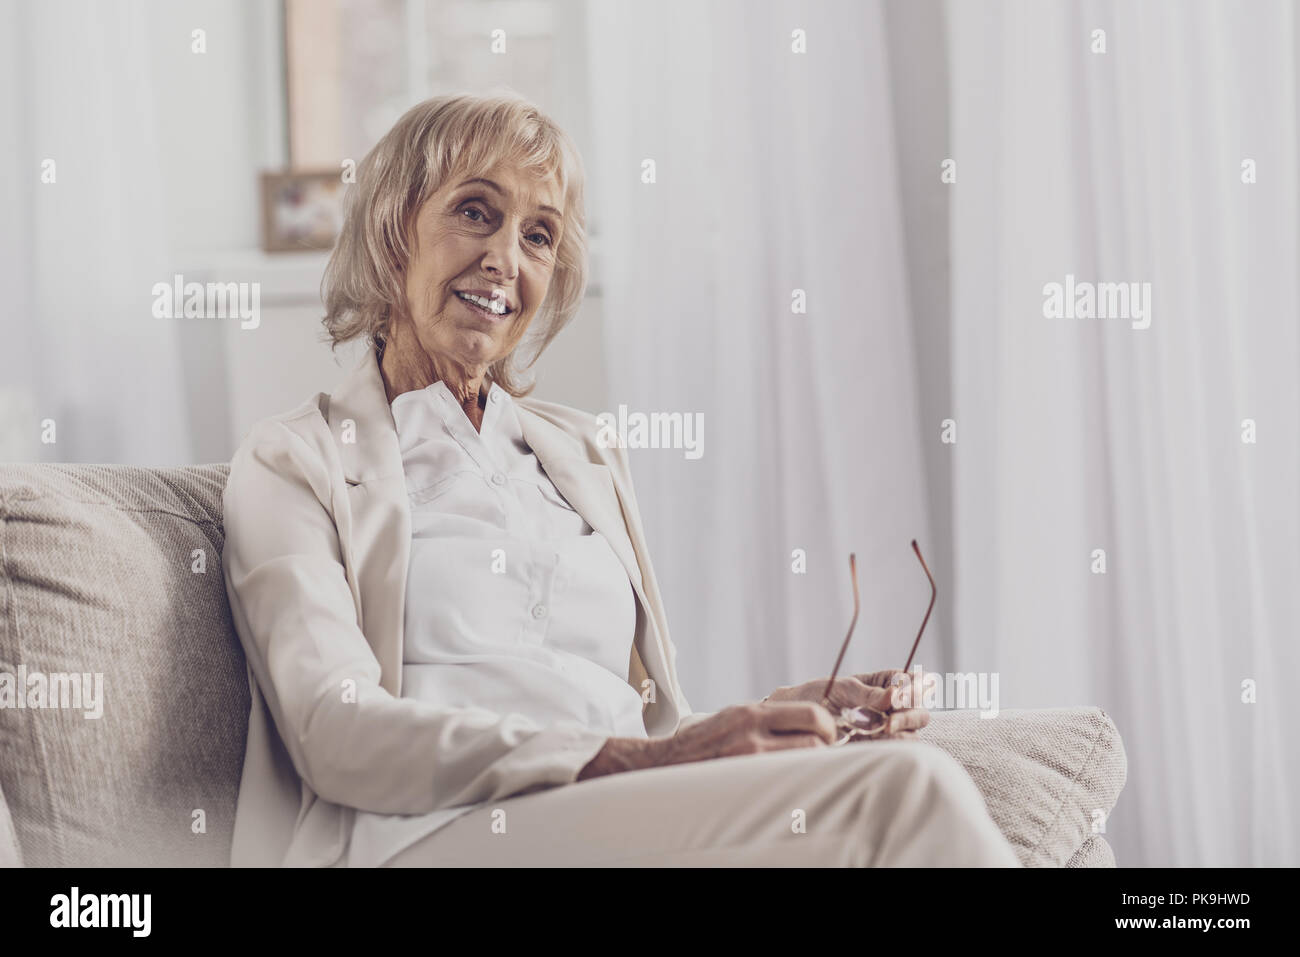 Appealing woman with facial wrinkles feeling thoughtful - Stock Image